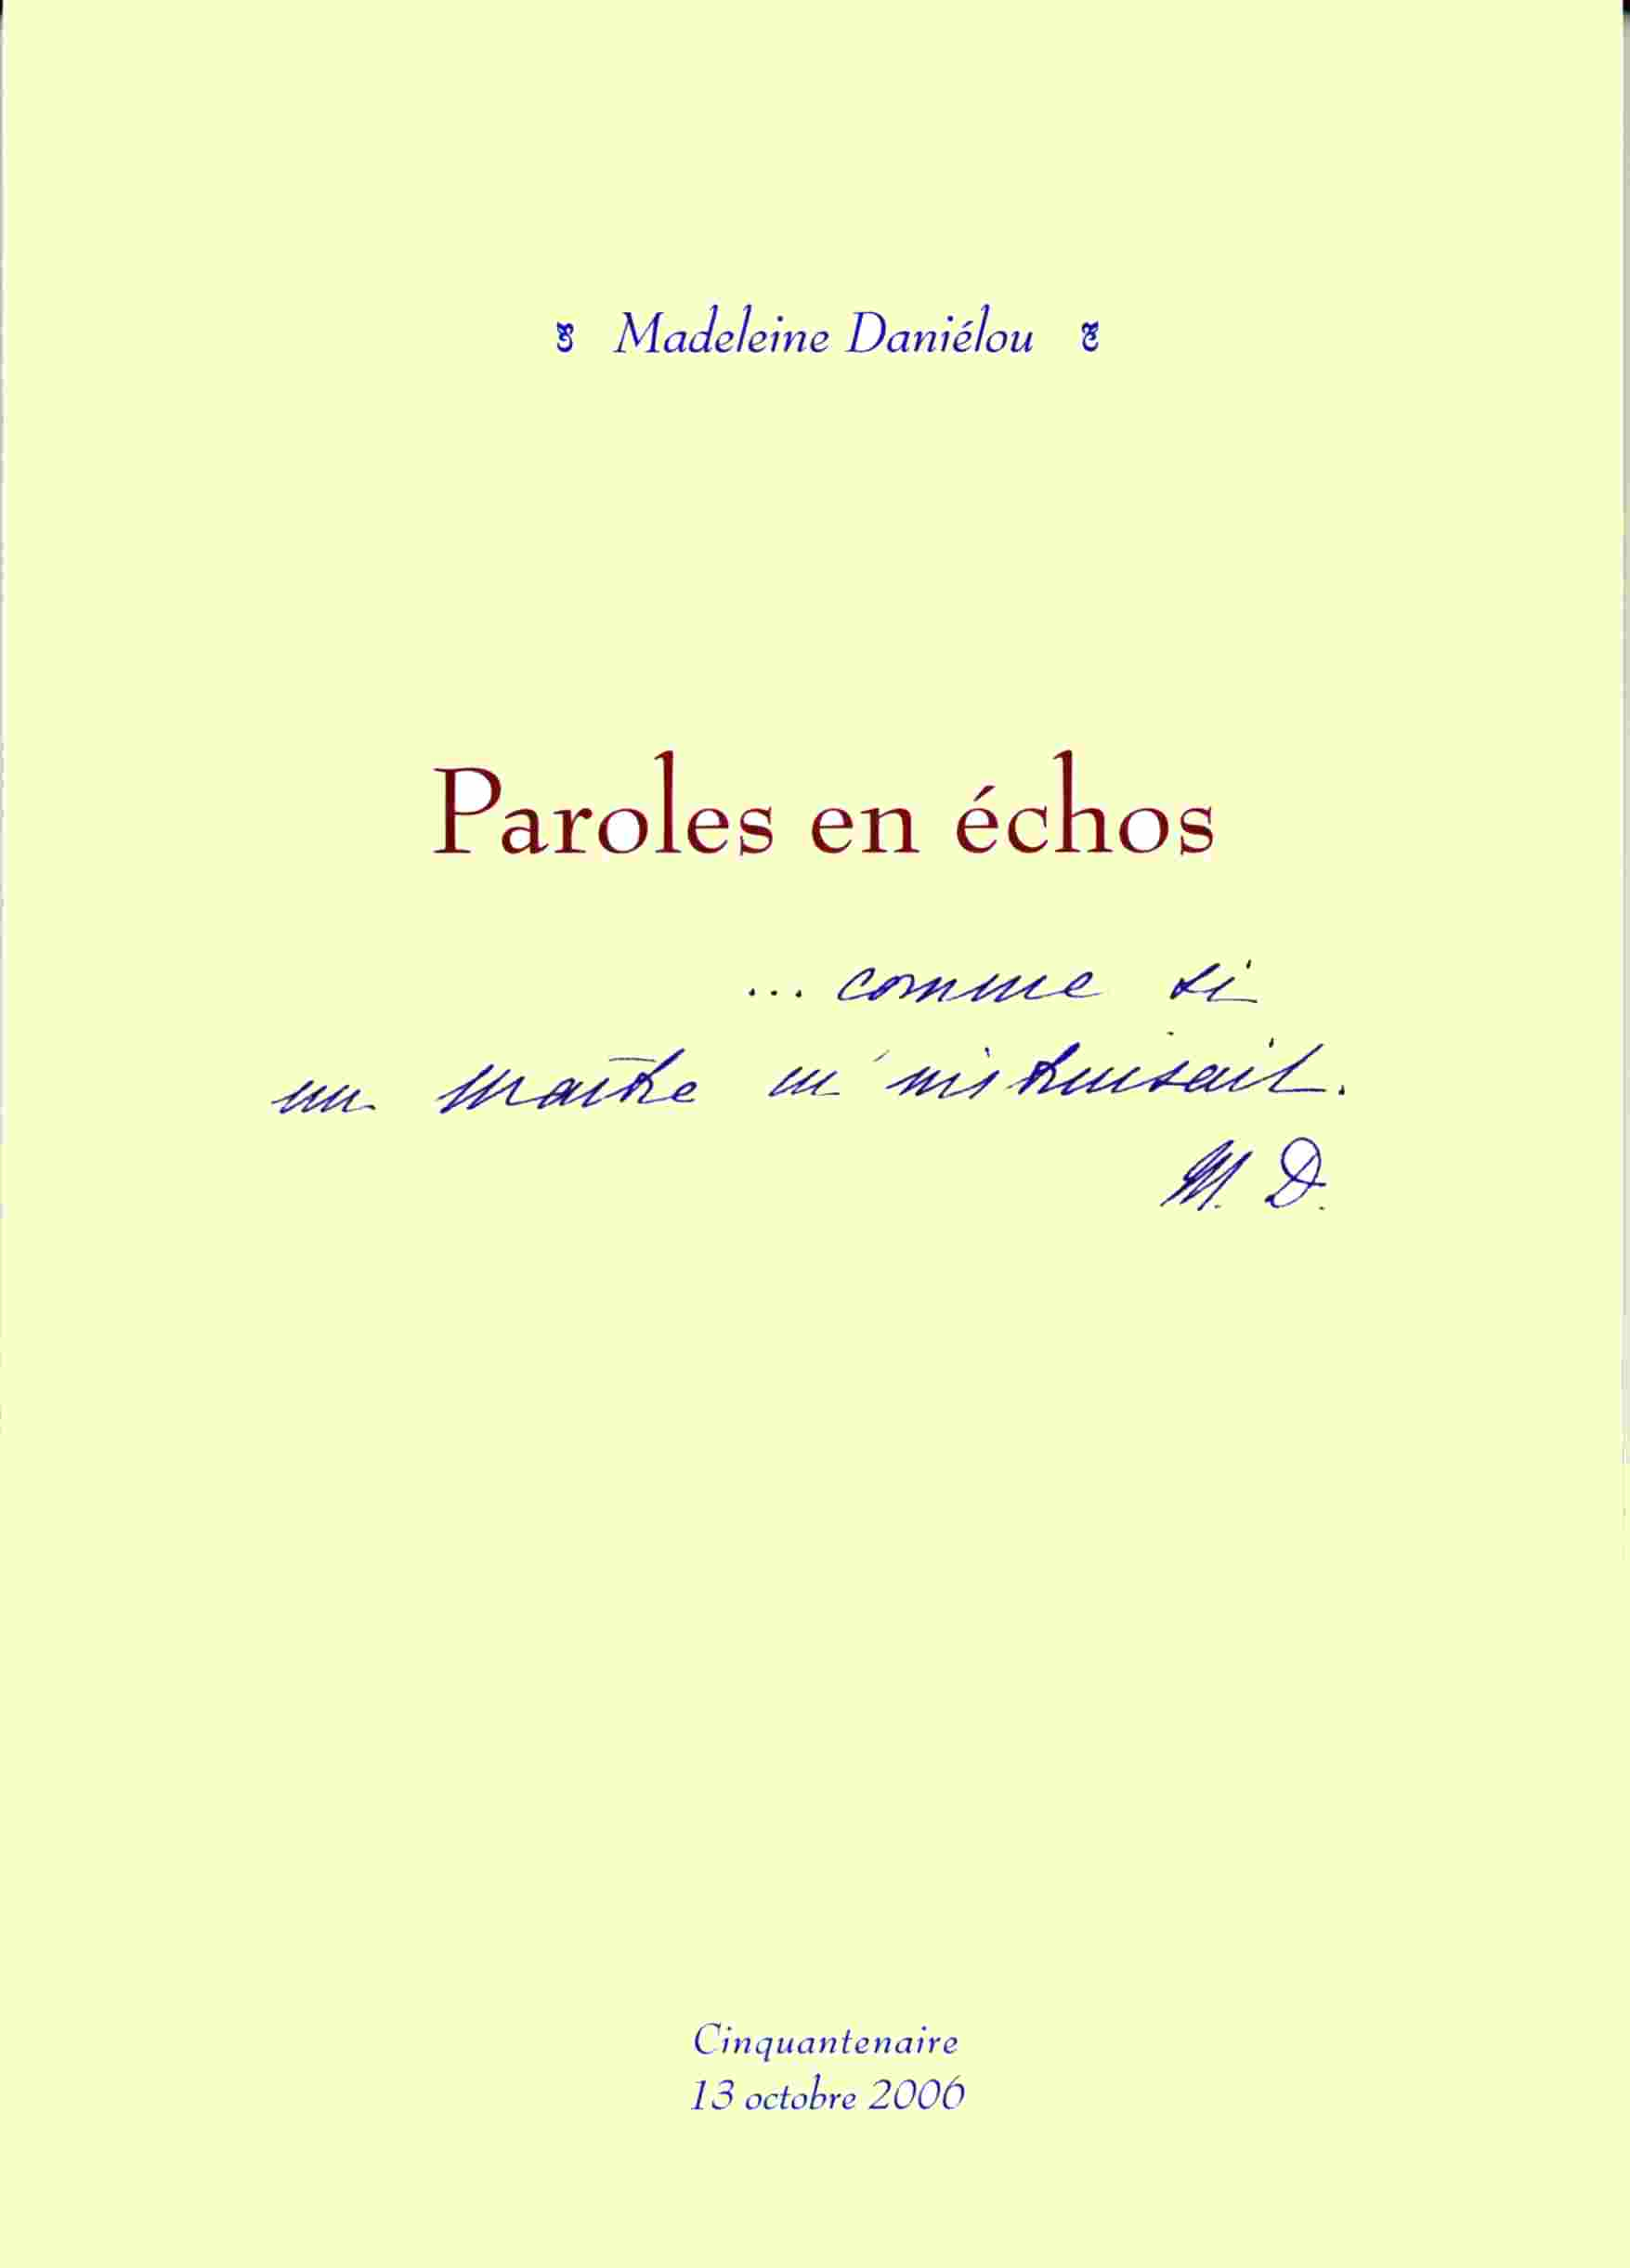 Paroles en échos